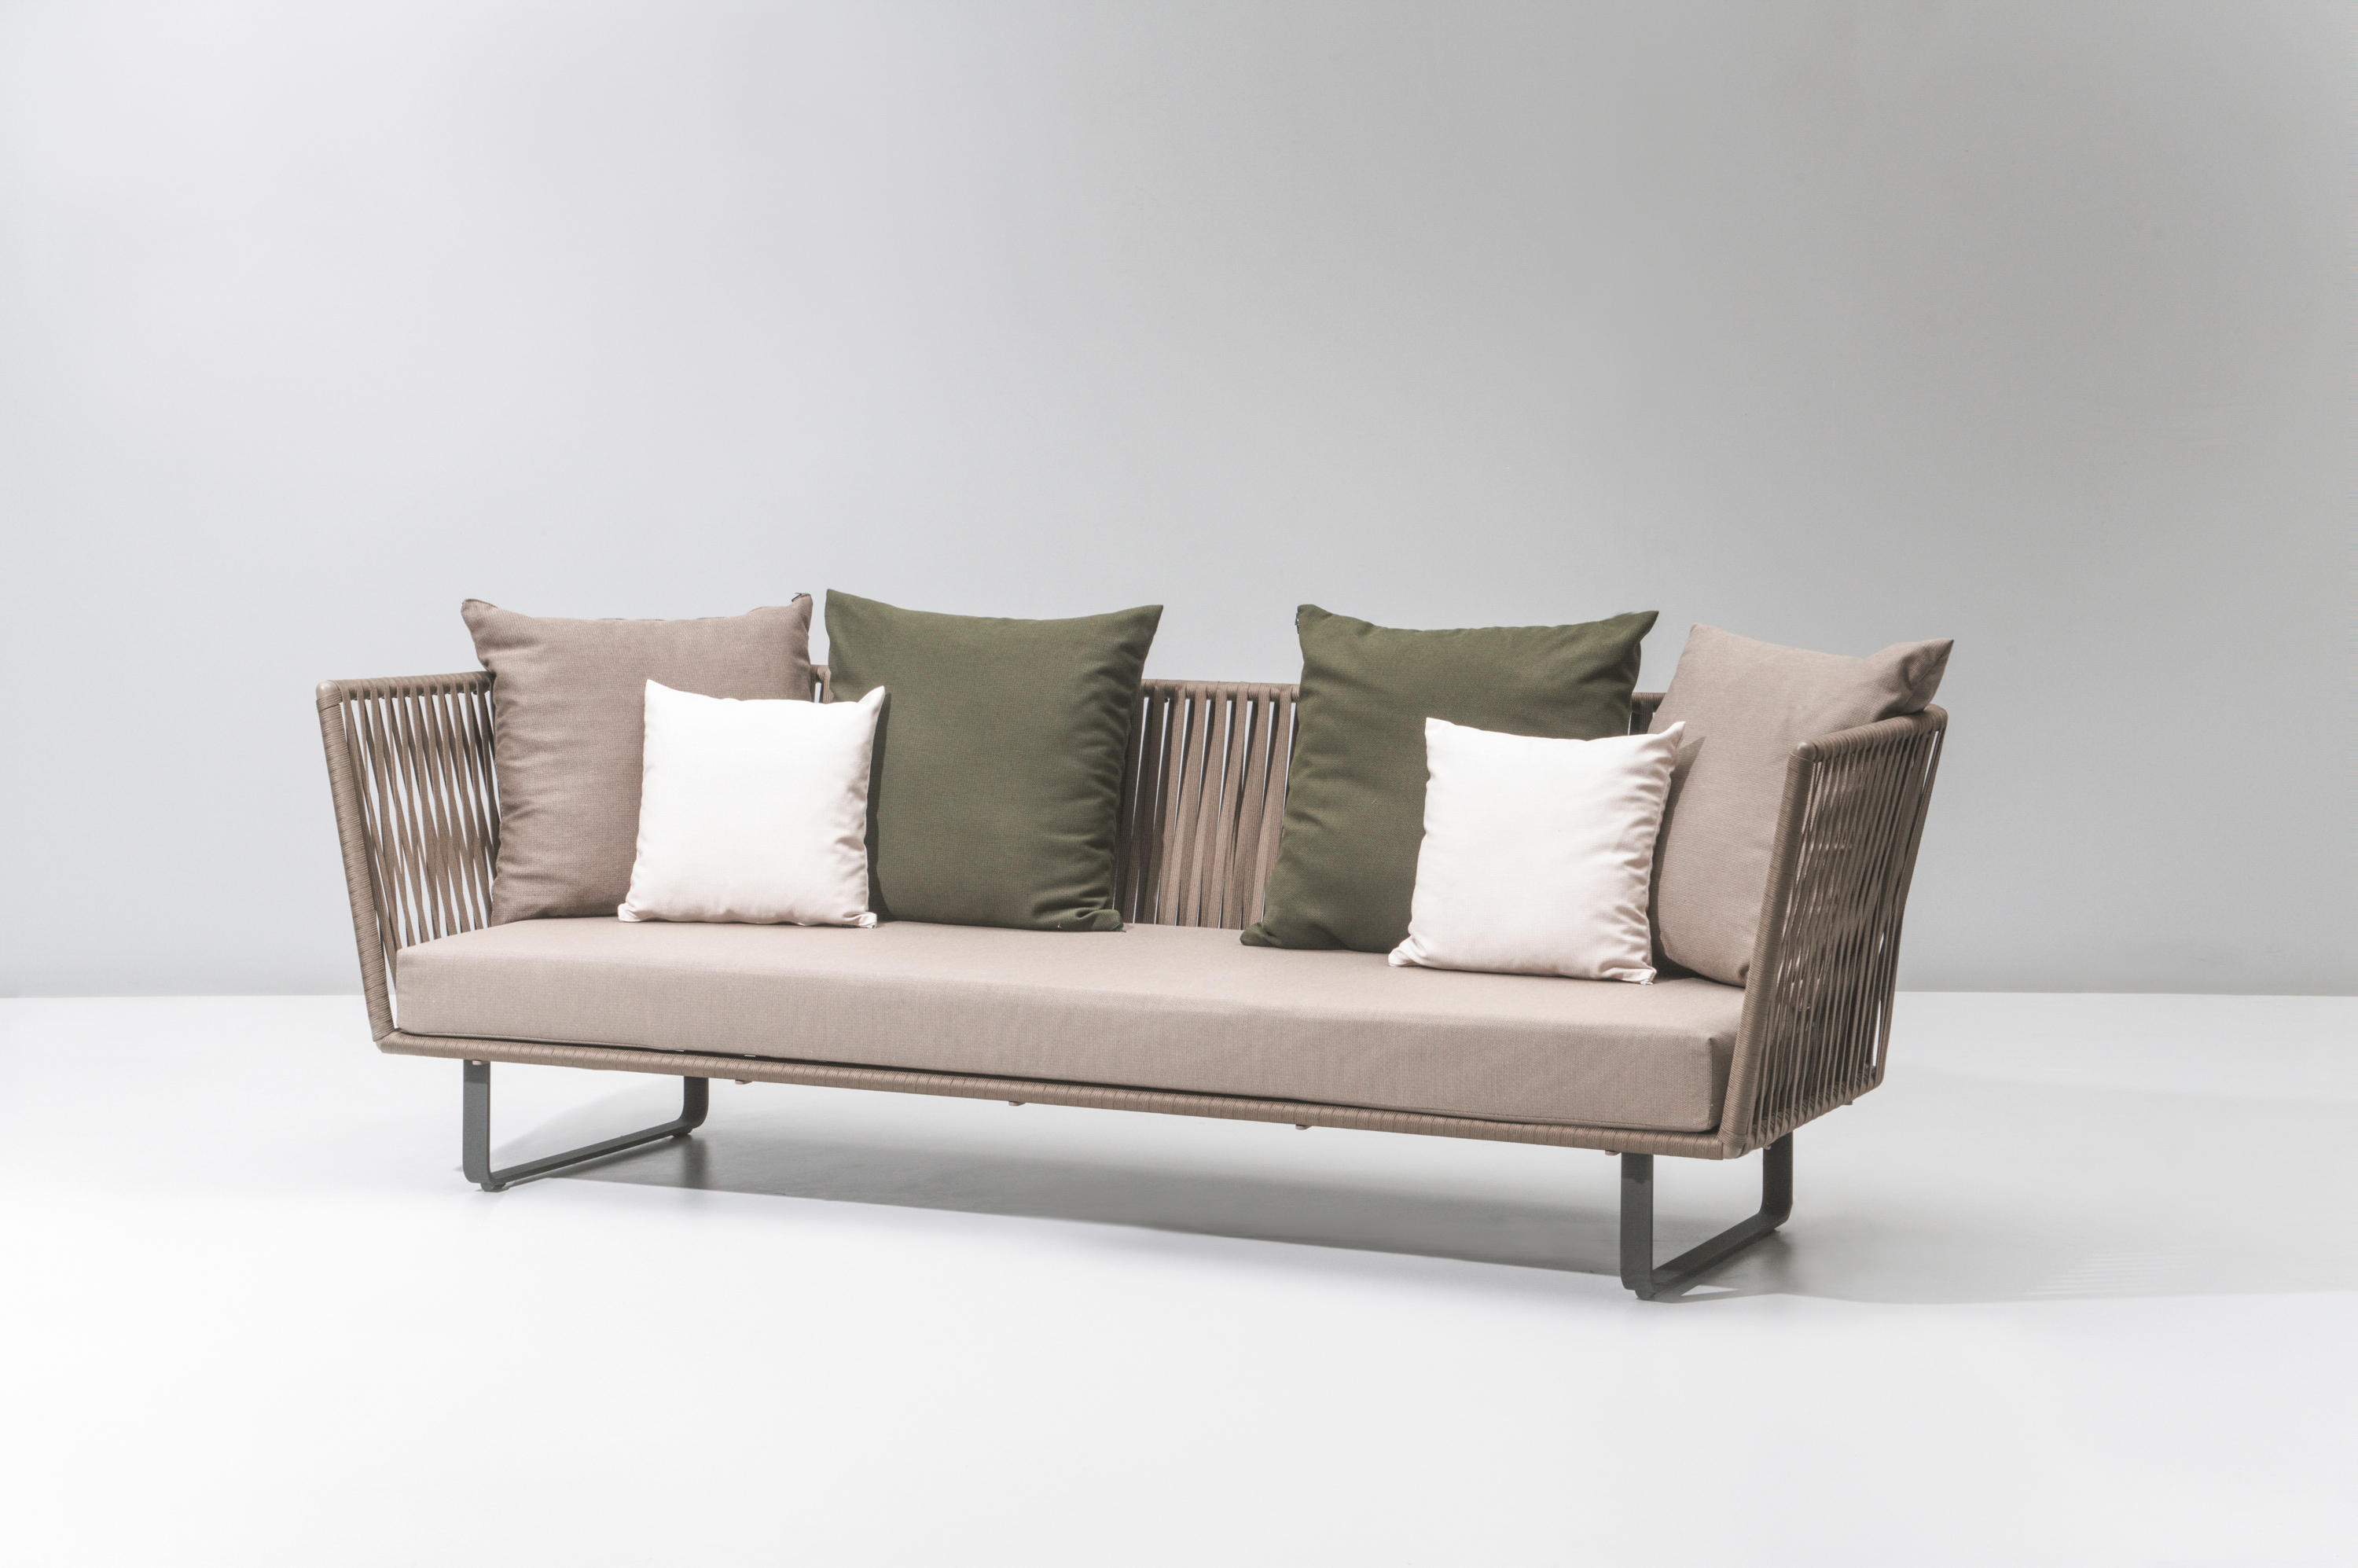 Kettal Bitta Sofas Furniture From Spain